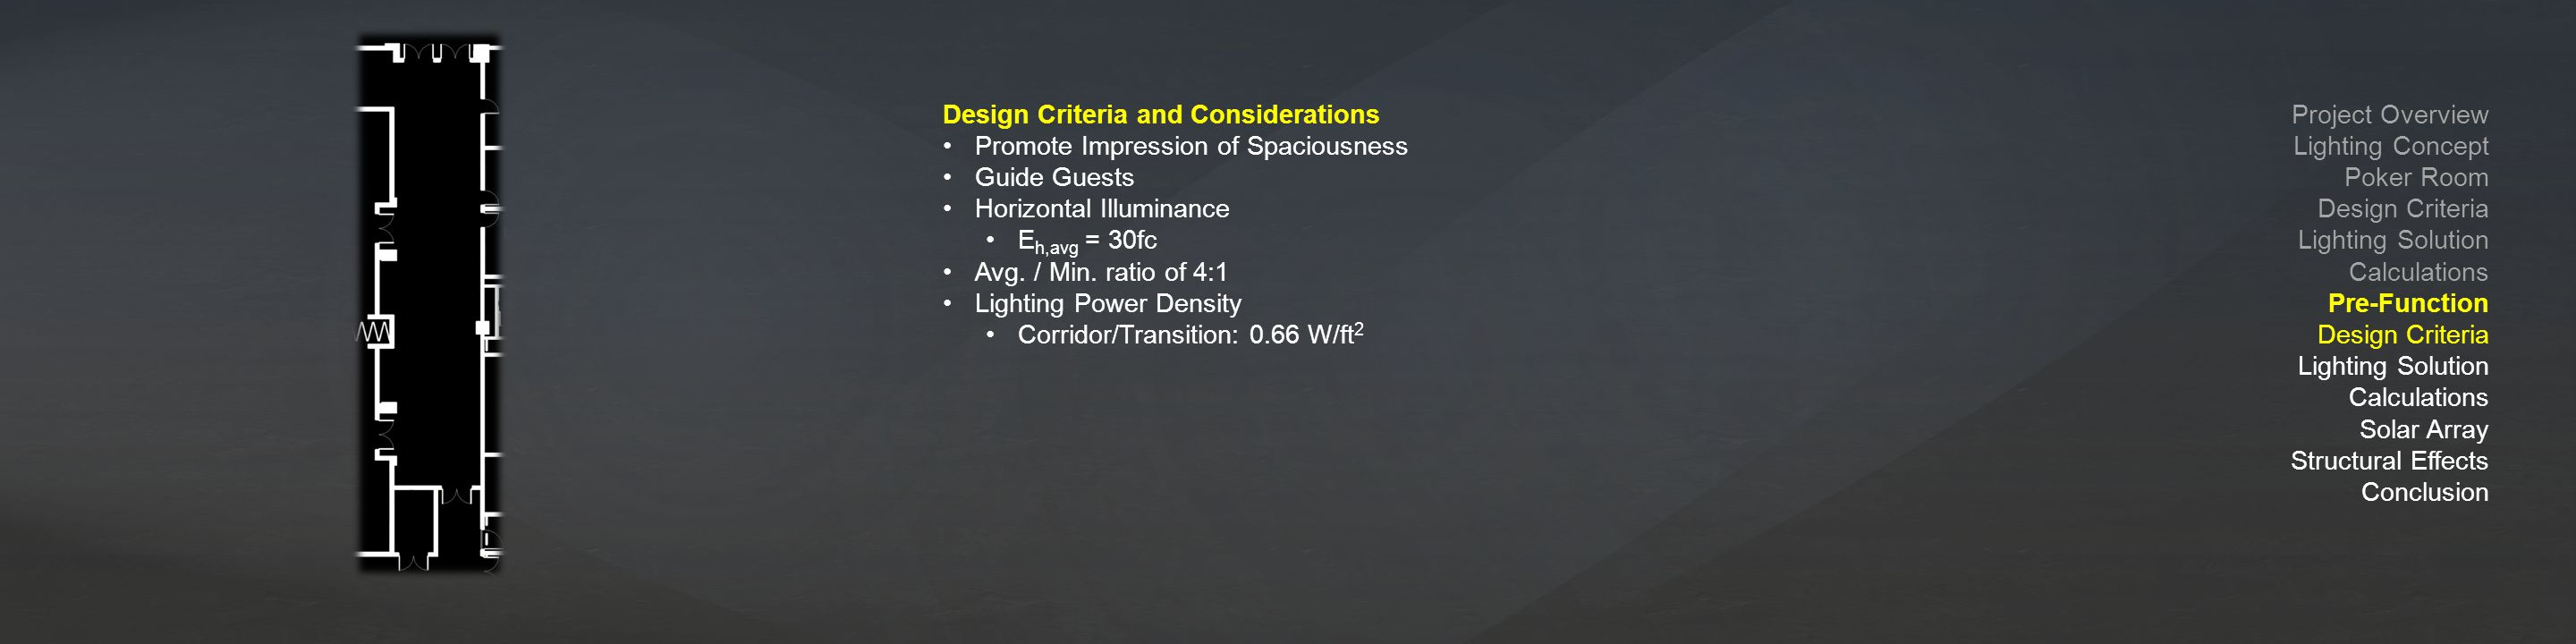 Design Criteria and Considerations Promote Impression of Spaciousness Guide Guests Horizontal Illuminance E h,avg = 30fc Avg.